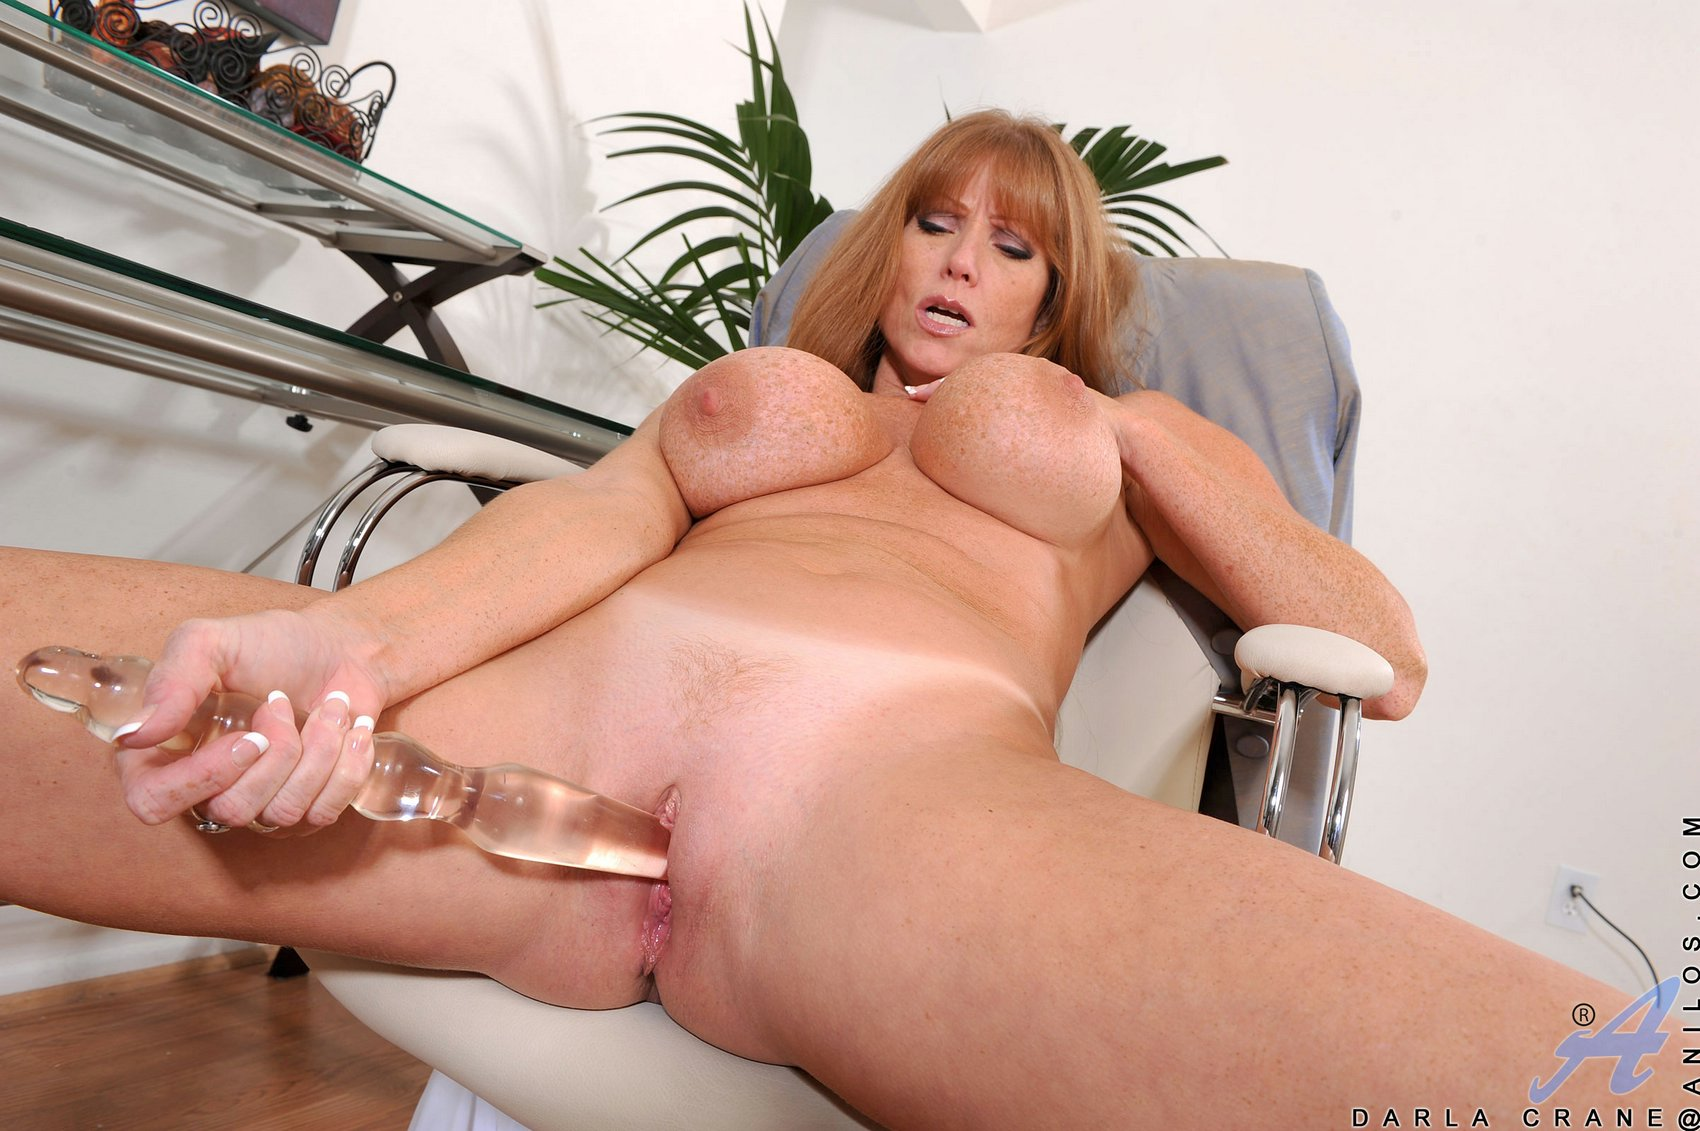 busty mature lady darla crane fucking her pussy with glass dildo